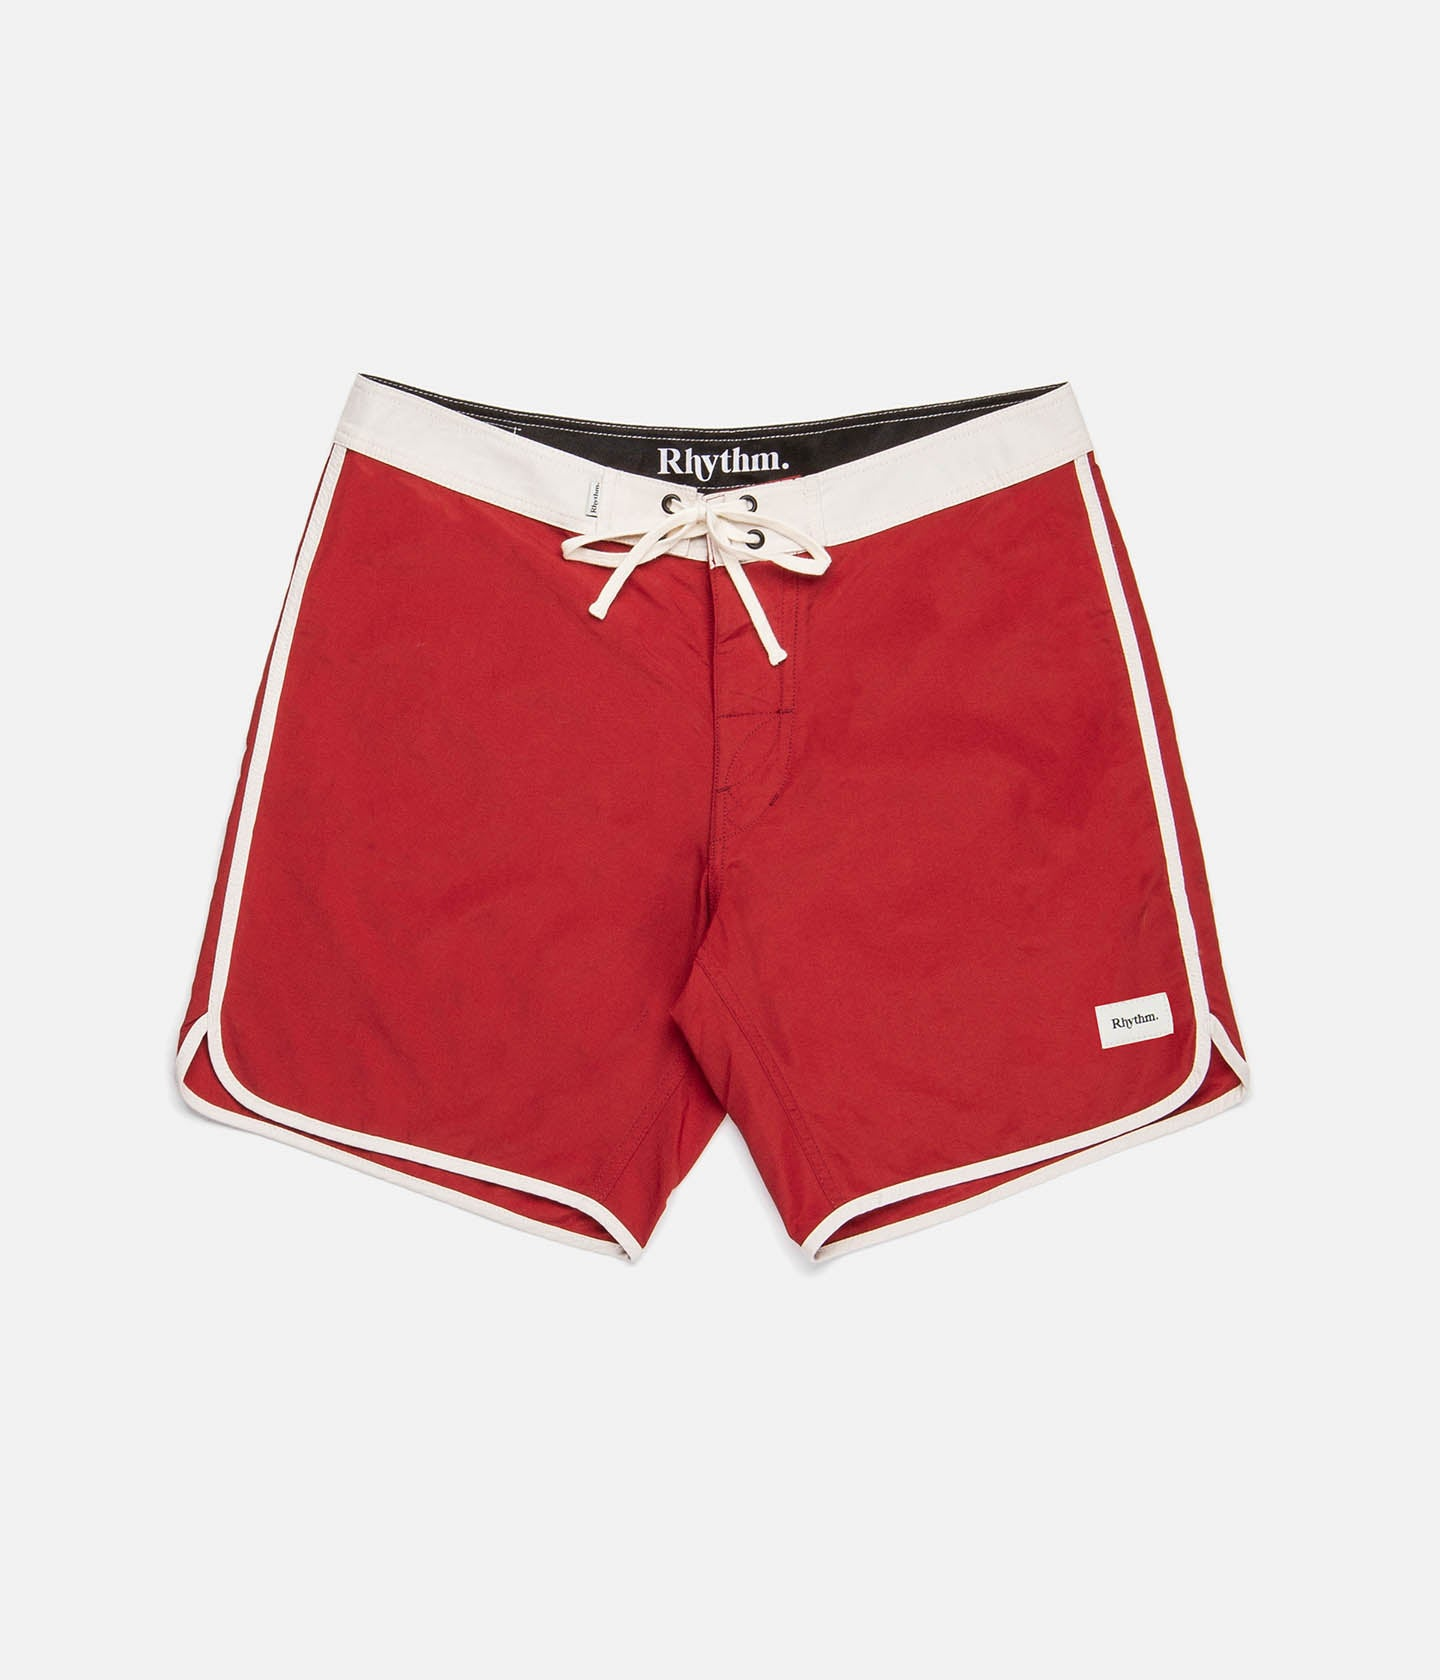 ddef290f77 Classic Scallop Trunk Classic Red l Trunks l Rhythm